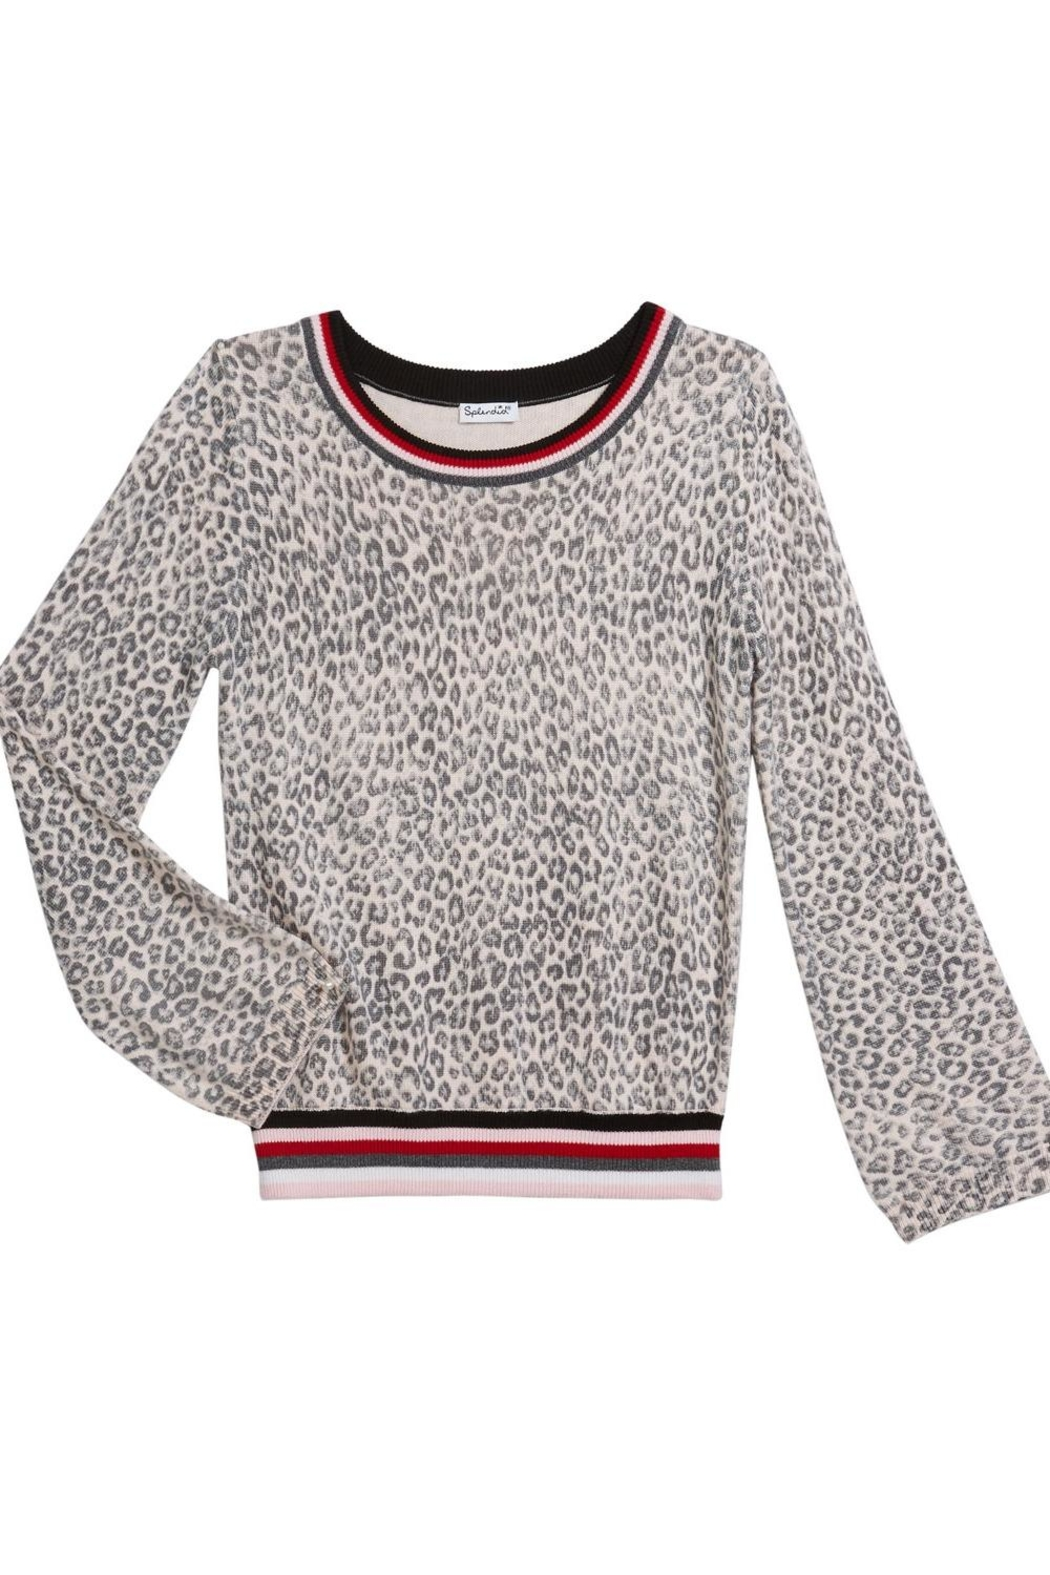 Splendid Leopard Knit - Main Image